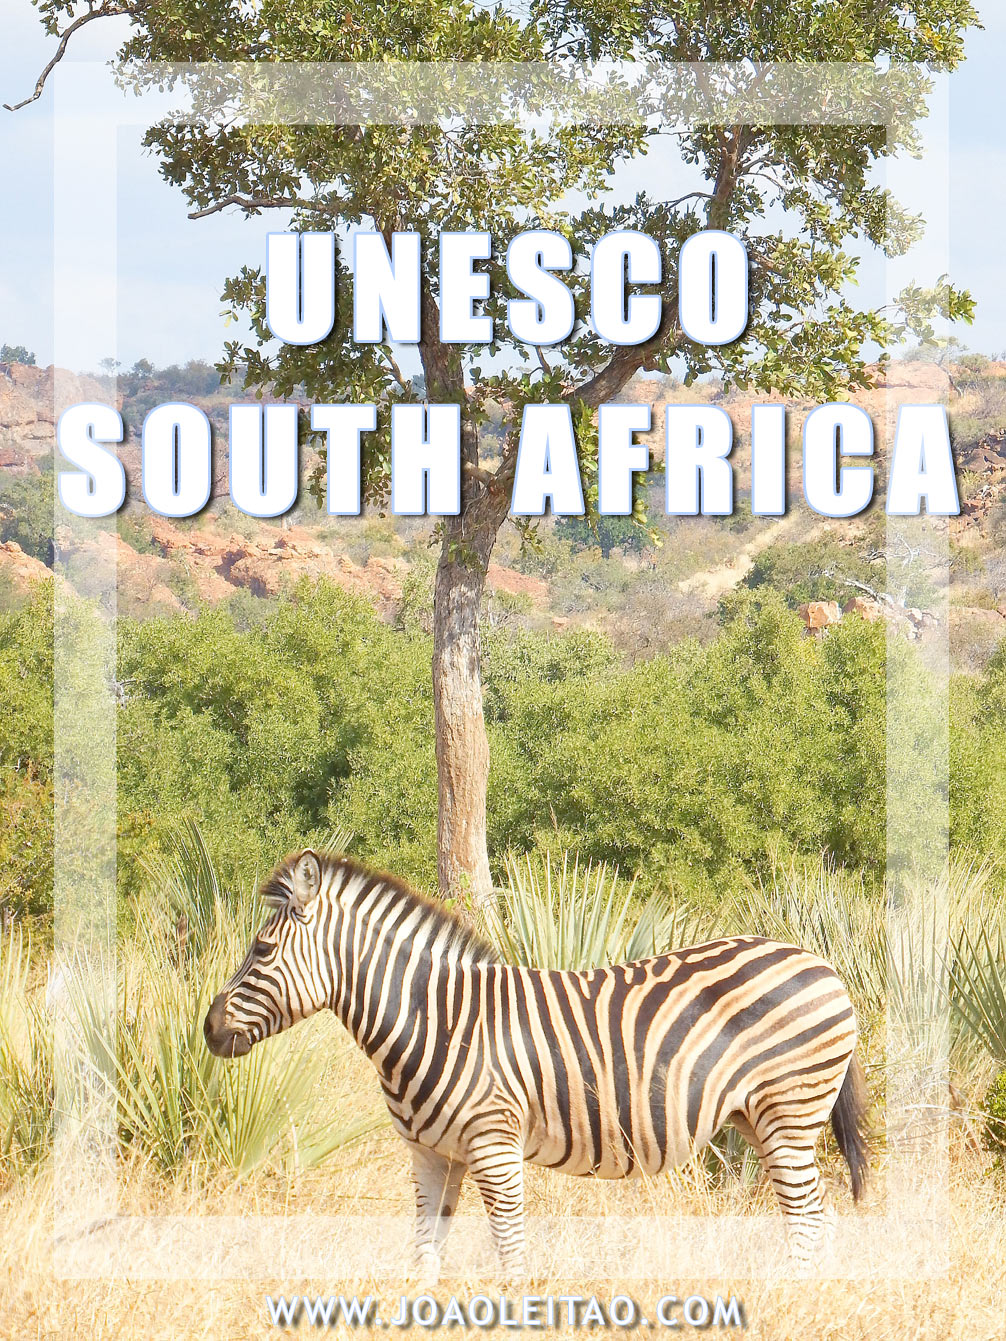 UNESCO Sites in South Africa